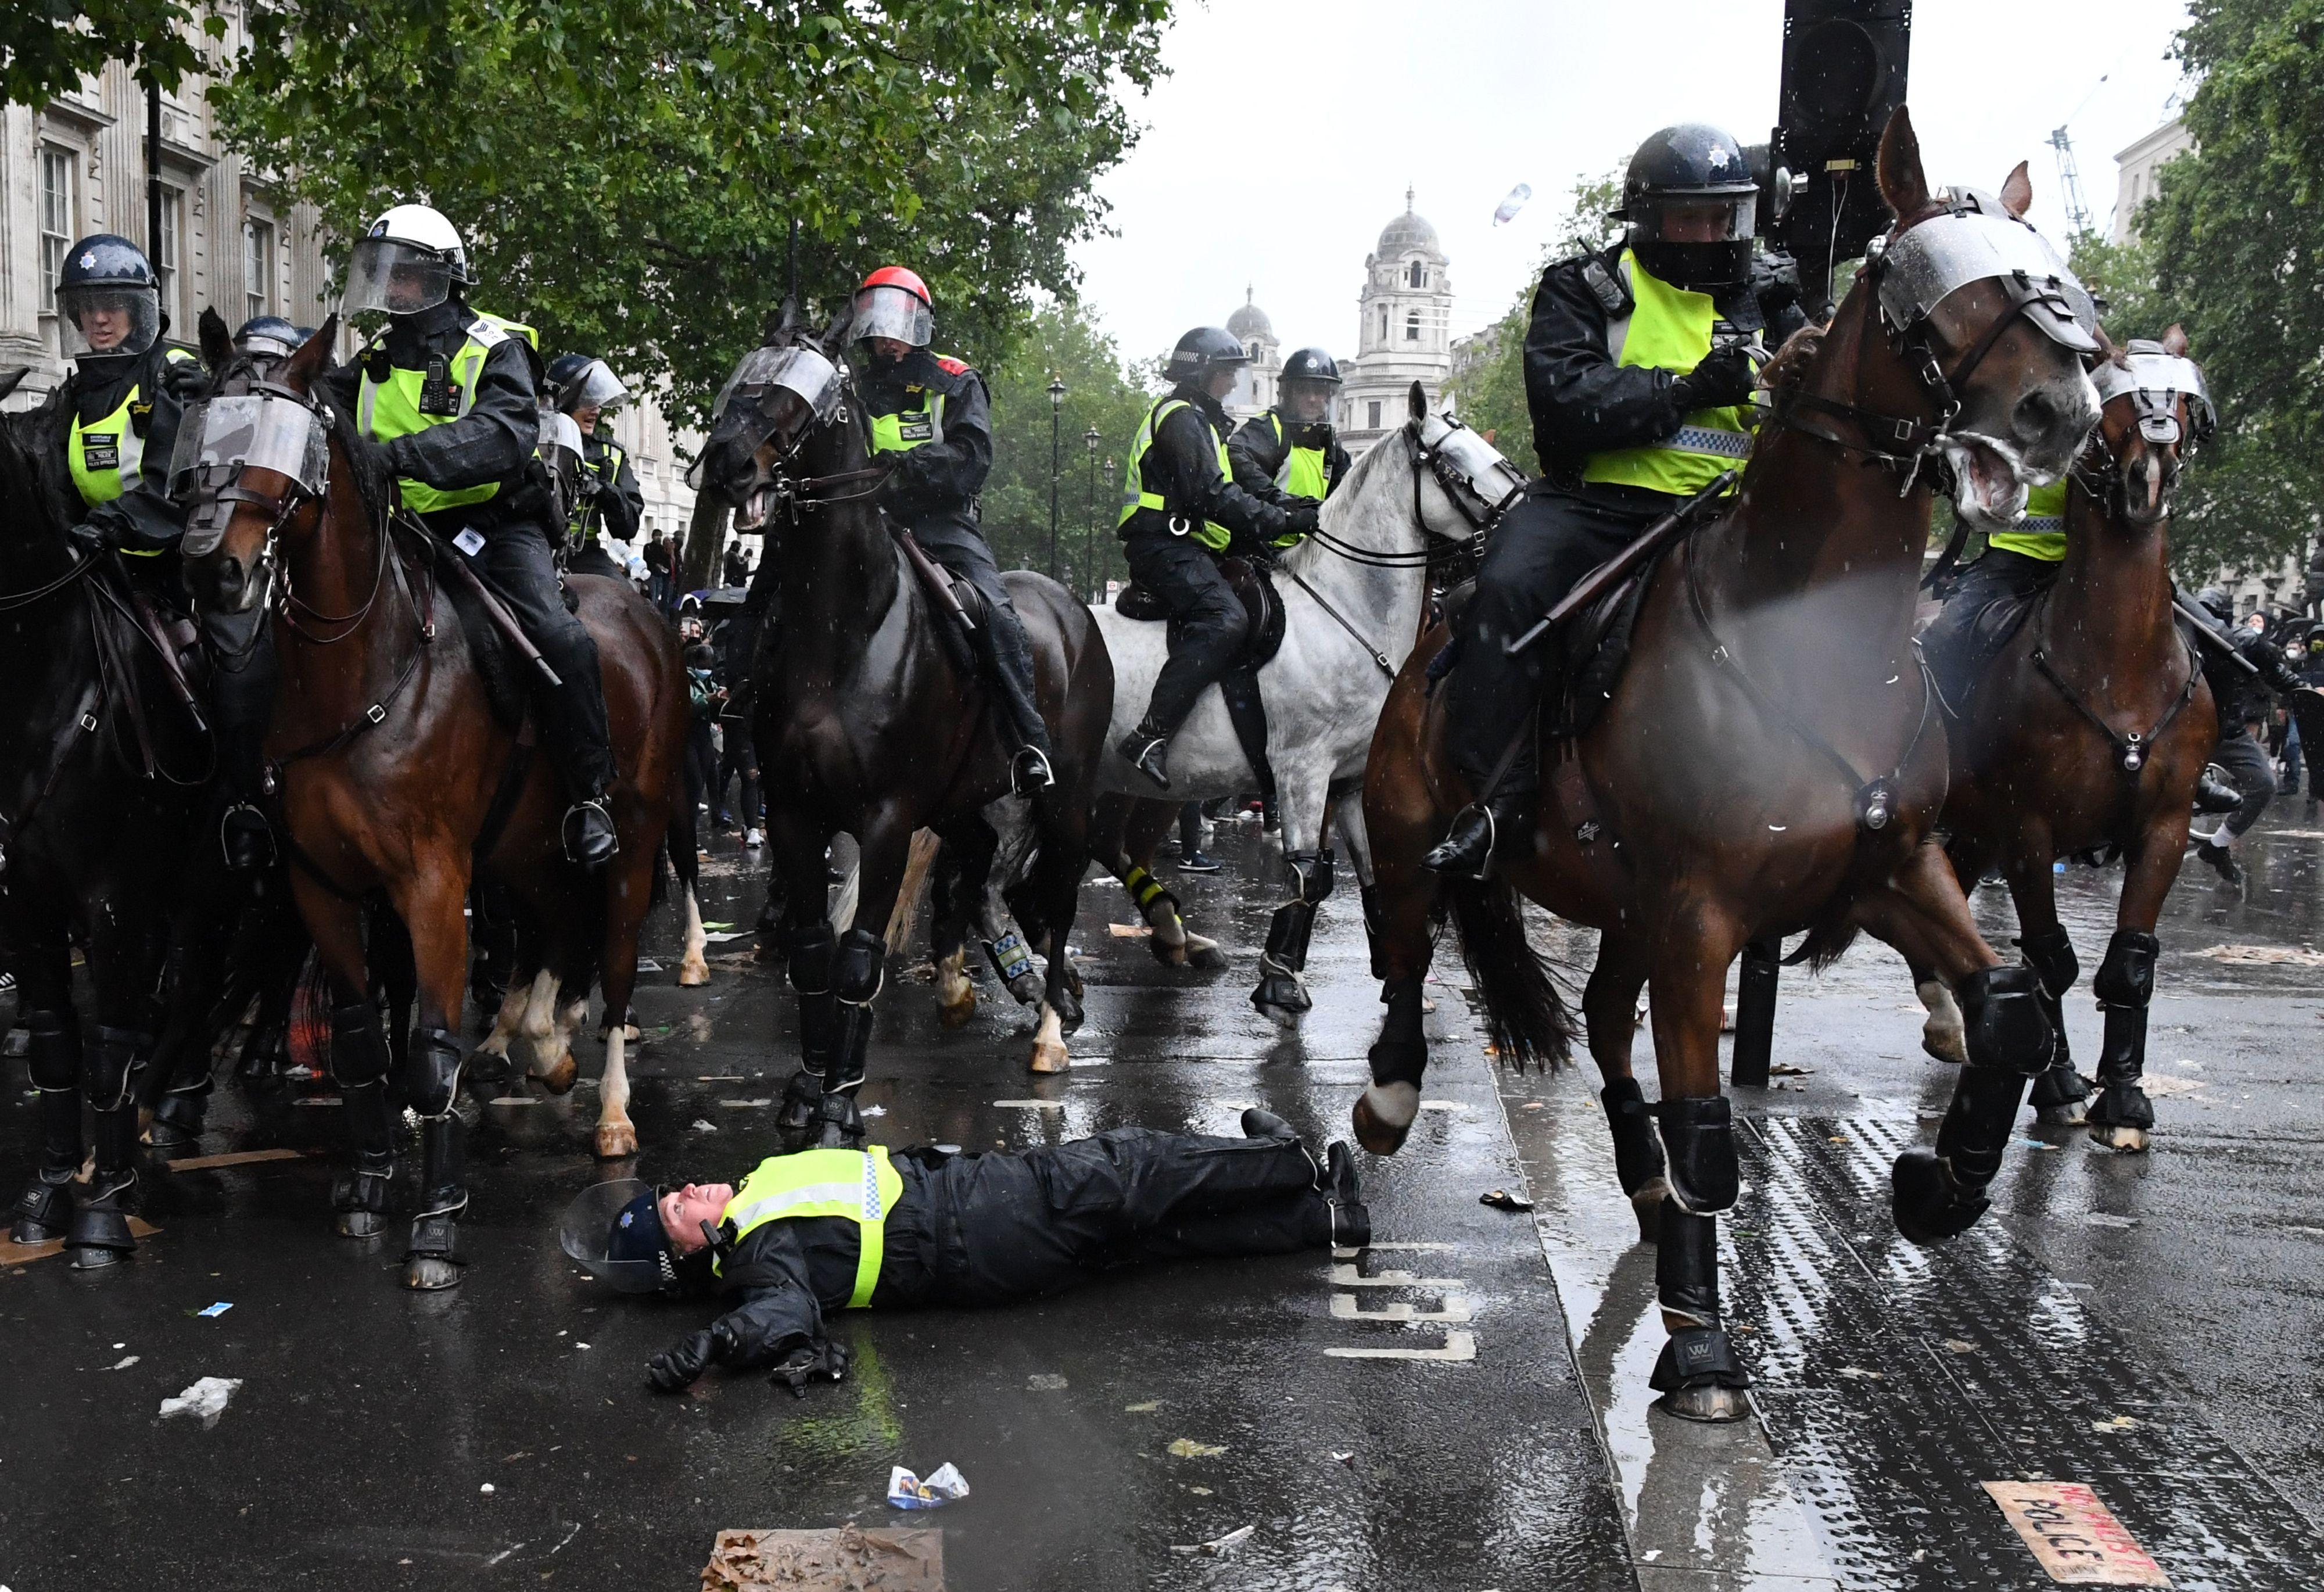 """TOPSHOT - A mounted police officer lays on the road after being unseated from their horse, during a demonstration on Whitehall, near the entrance to Downing Street in central London on June 6, 2020, to show solidarity with the Black Lives Matter movement in the wake of the killing of George Floyd, an unarmed black man who died after a police officer knelt on his neck in Minneapolis. - The United States braced Friday for massive weekend protests against racism and police brutality, as outrage soared over the latest law enforcement abuses against demonstrators that were caught on camera. With protests over last week's police killing of George Floyd, an unarmed black man, surging into a second weekend, President Donald Trump sparked fresh controversy by saying it was a """"great day"""" for Floyd. (Photo by DANIEL LEAL-OLIVAS / AFP) (Photo by DANIEL LEAL-OLIVAS/AFP via Getty Images)"""